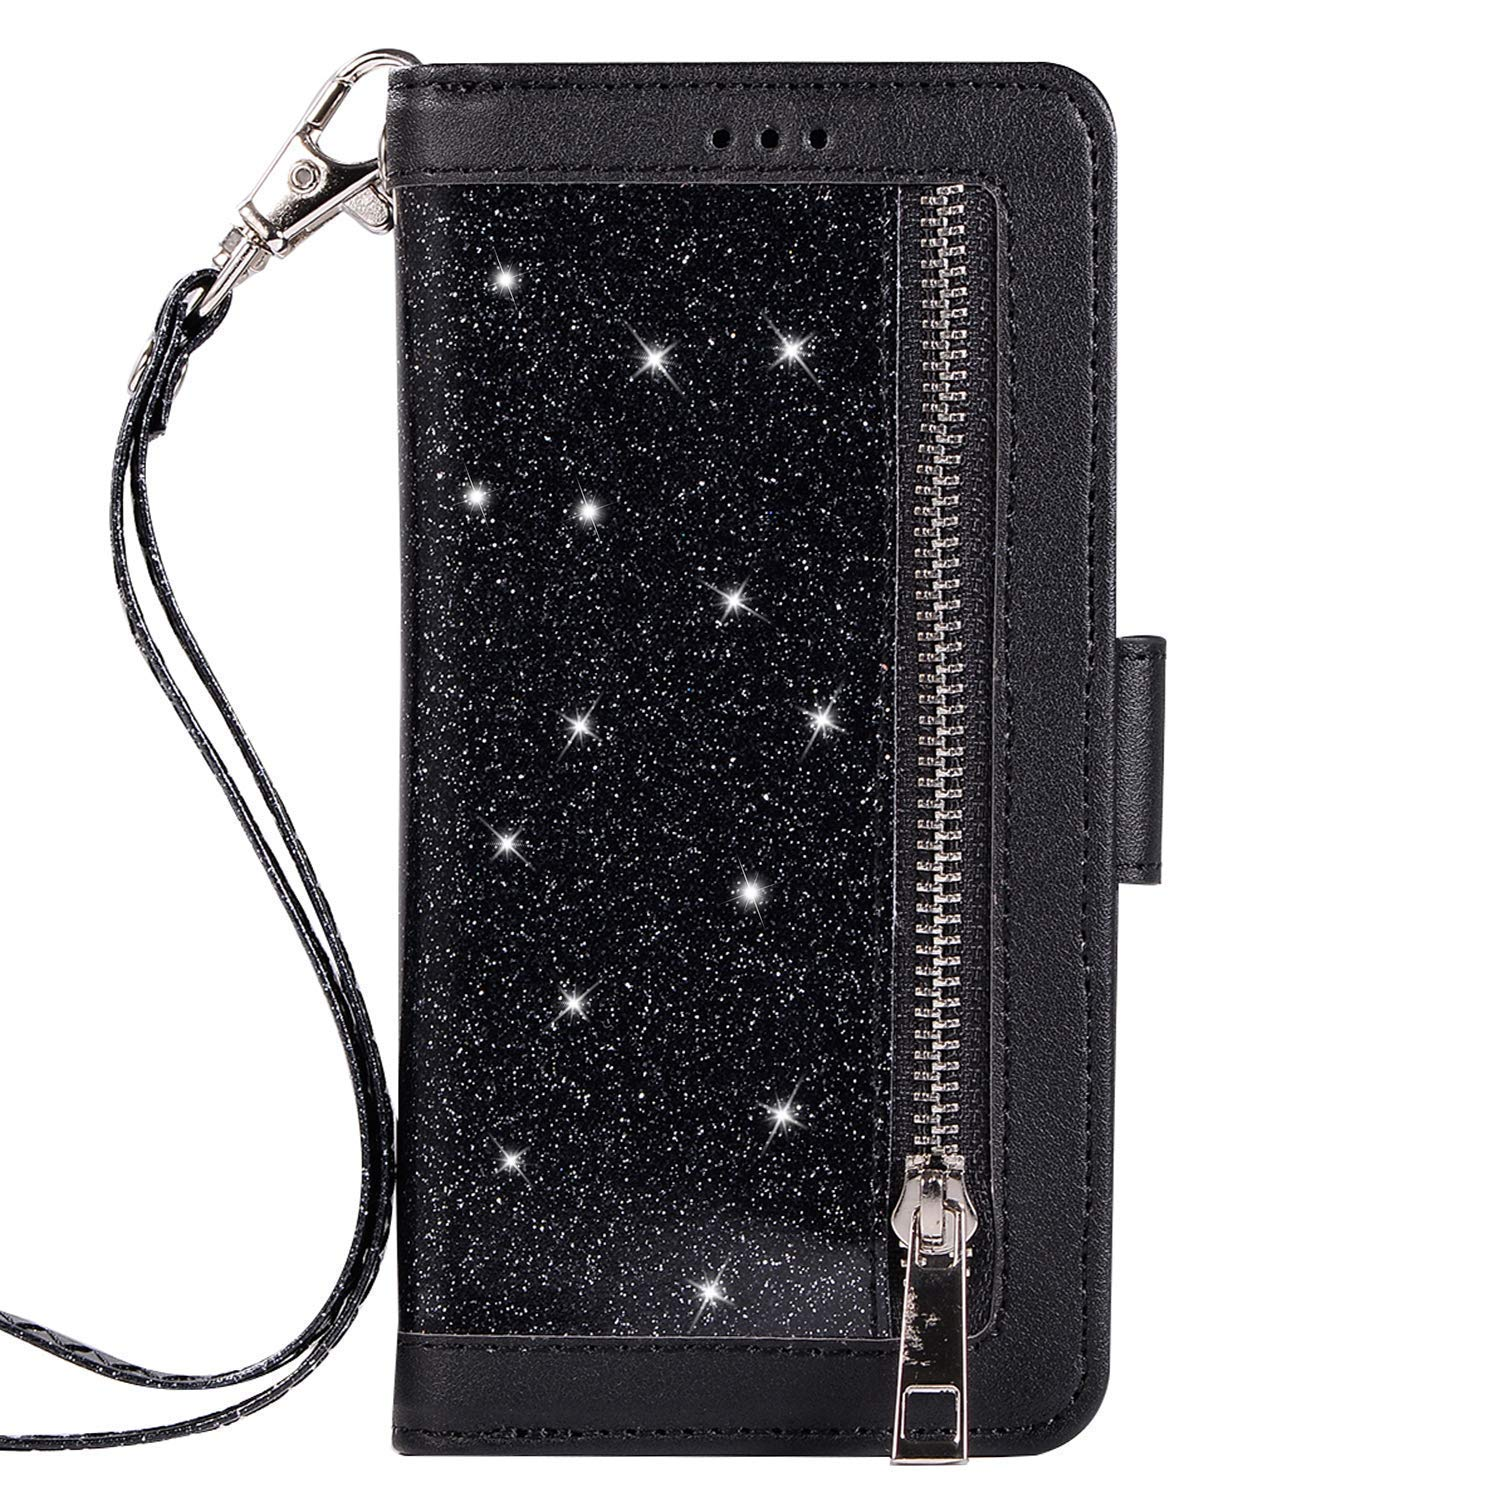 Herbests Compatible with Huawei Mate 20 Wallet Case Zipper Luxury Bling Glitter Shockproof Protective Leather Flip Cover 9 Card Slots Magnetic Phone Cover & Strap Kickstand,Black by Herbests